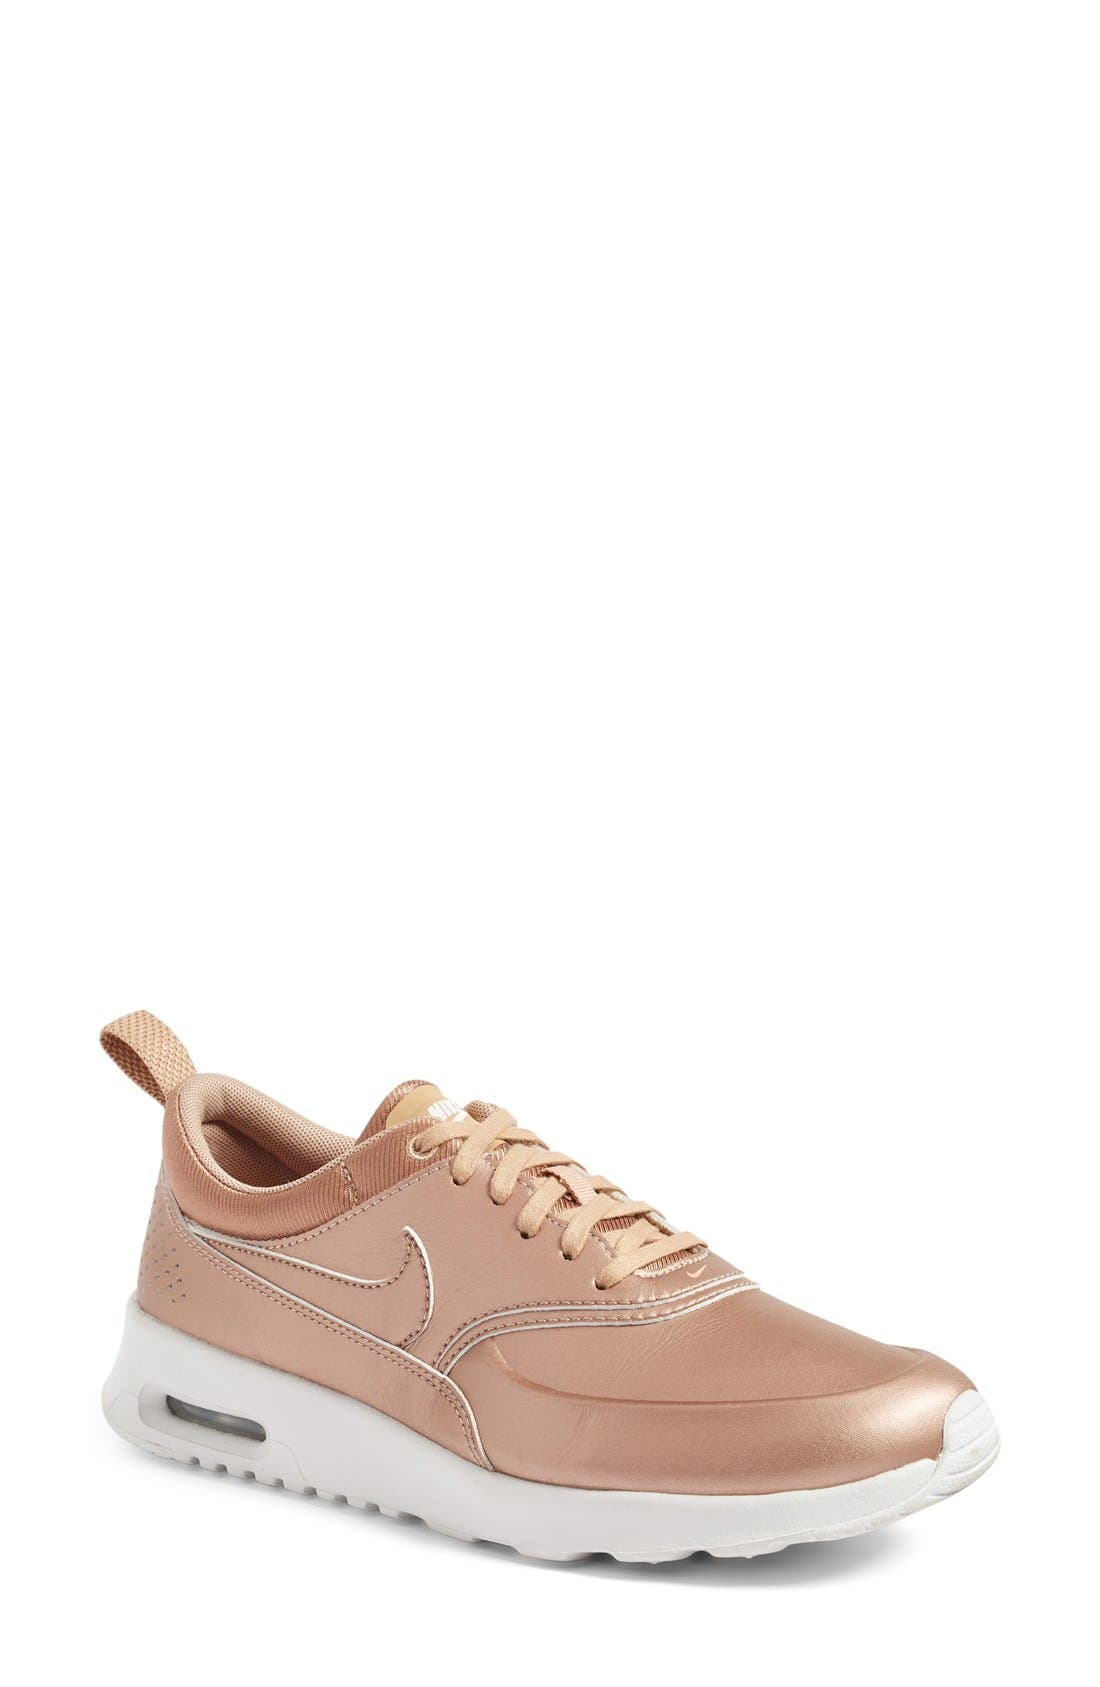 Air Max Thea SE Sneaker,                         Main,                         color, Metallic Bronze